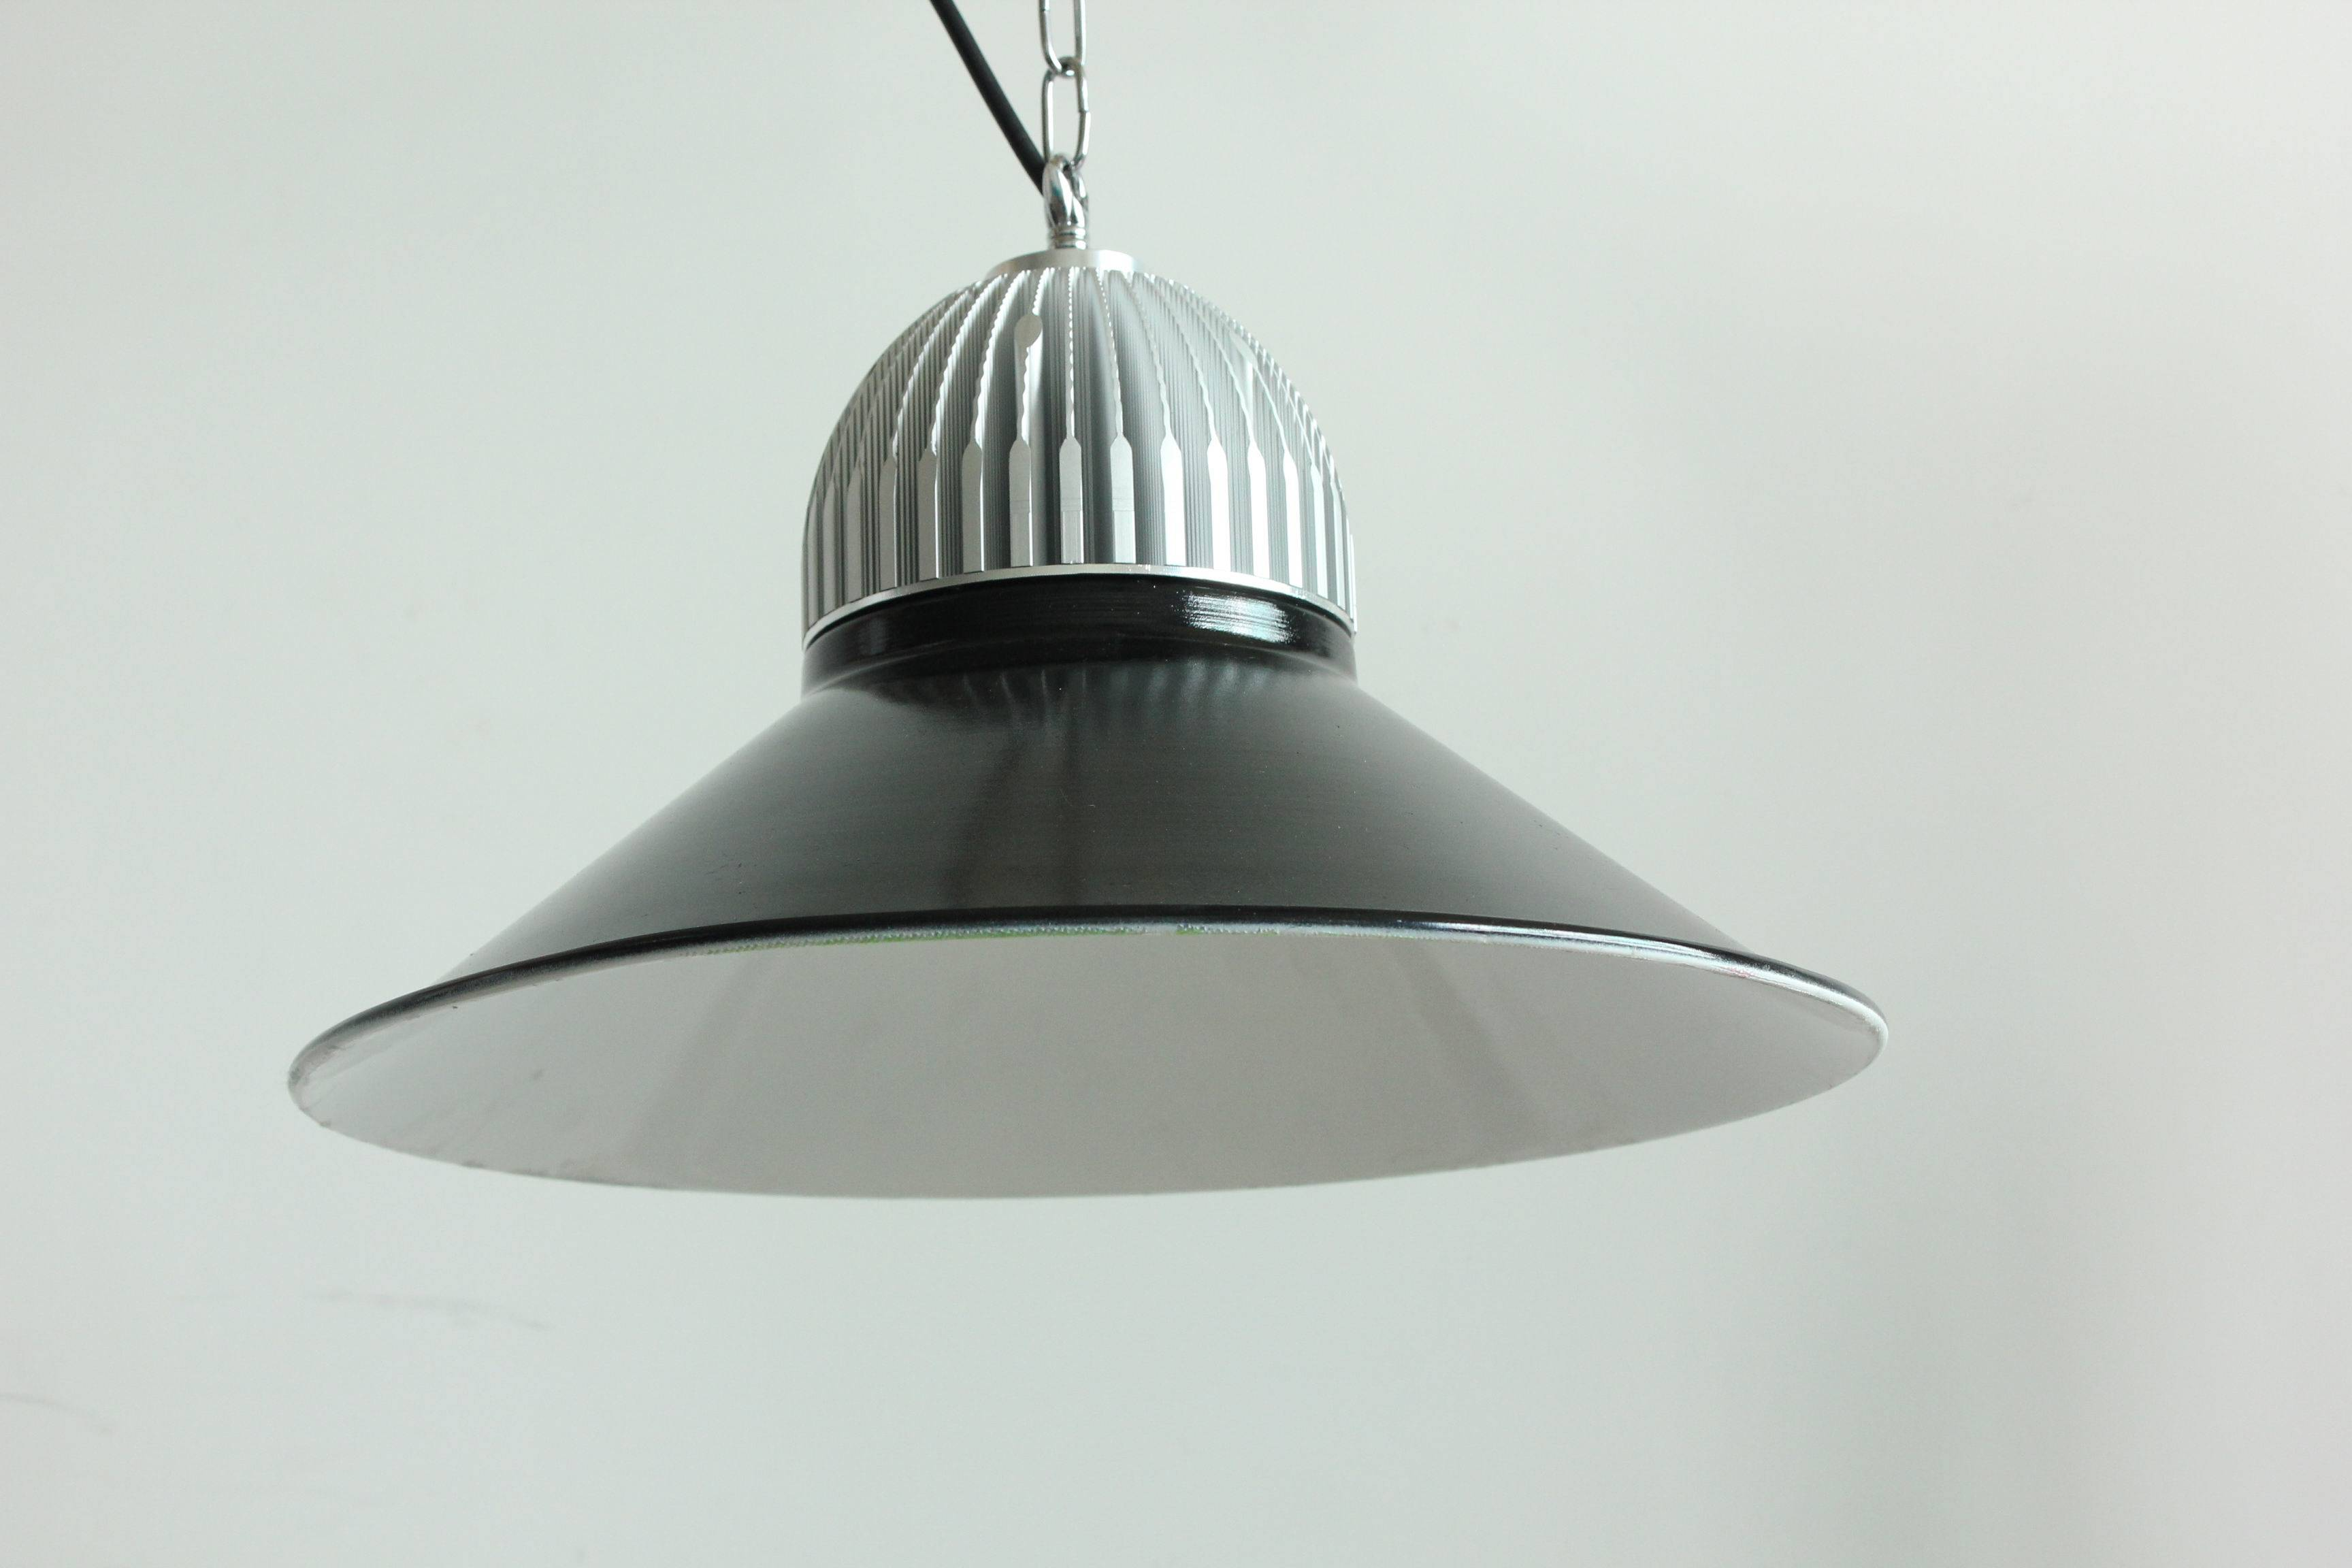 High Output LED High Bay 200W Warehouse Industrial Light